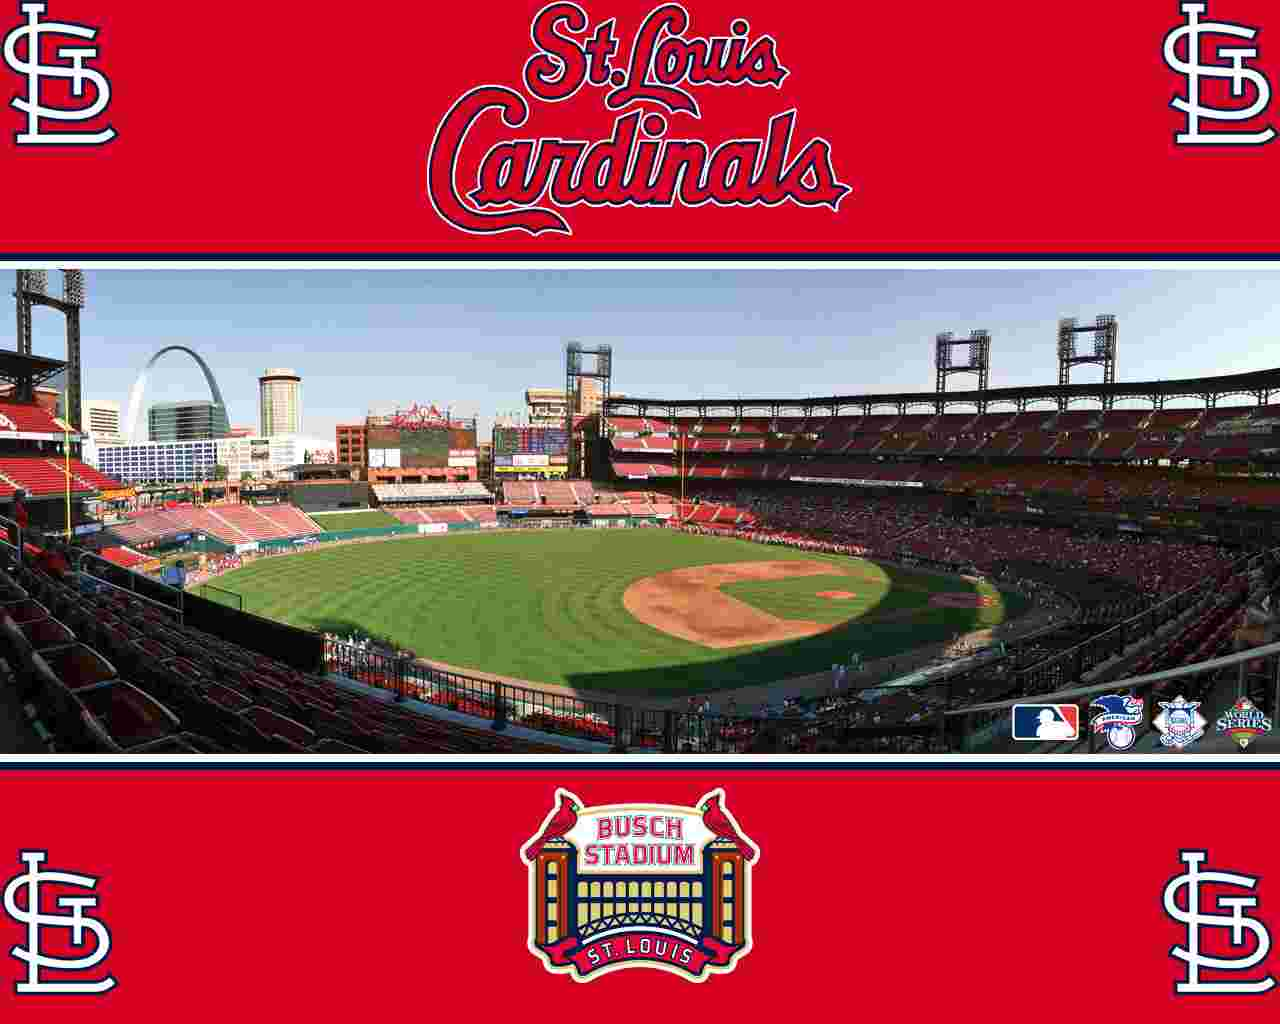 Iphone-Baseball-Cardinals-Free-high-quality-background-pictures-%C3%97-Cardinals-Baseball-Wallpa-wallpaper-wpc9006607